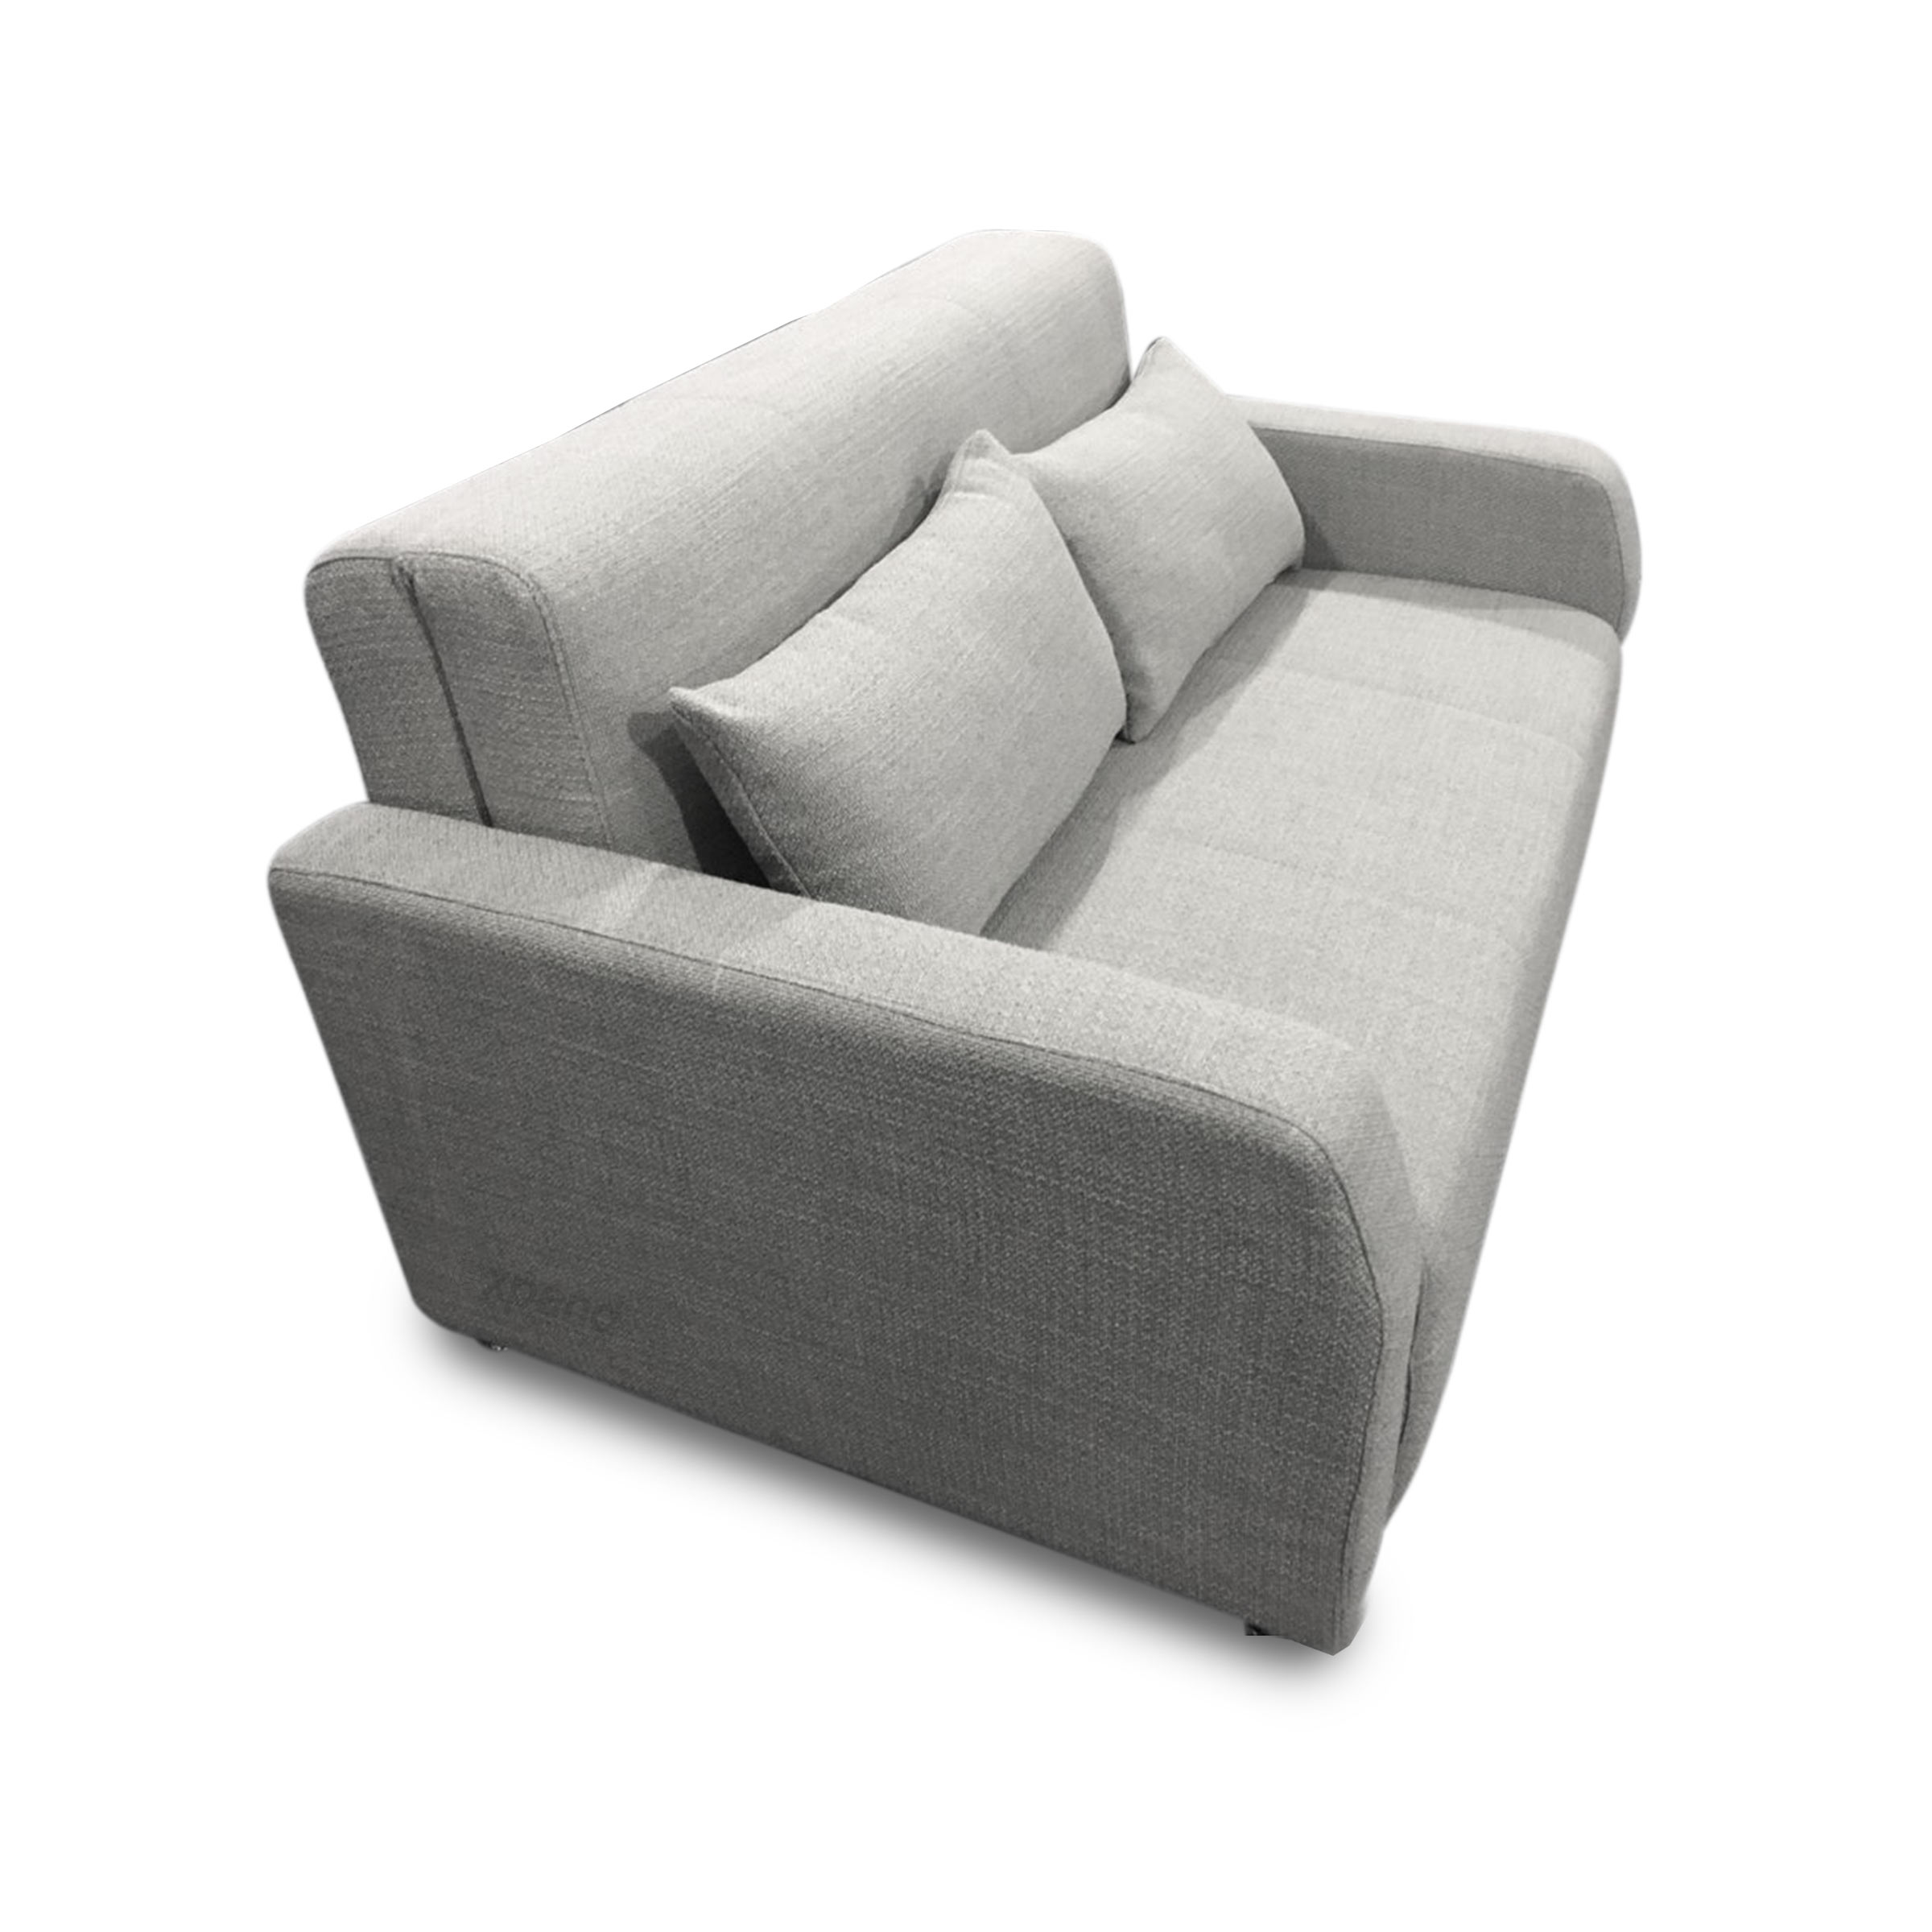 The Talia   Double Sofa Bed with Storage   Expand ...